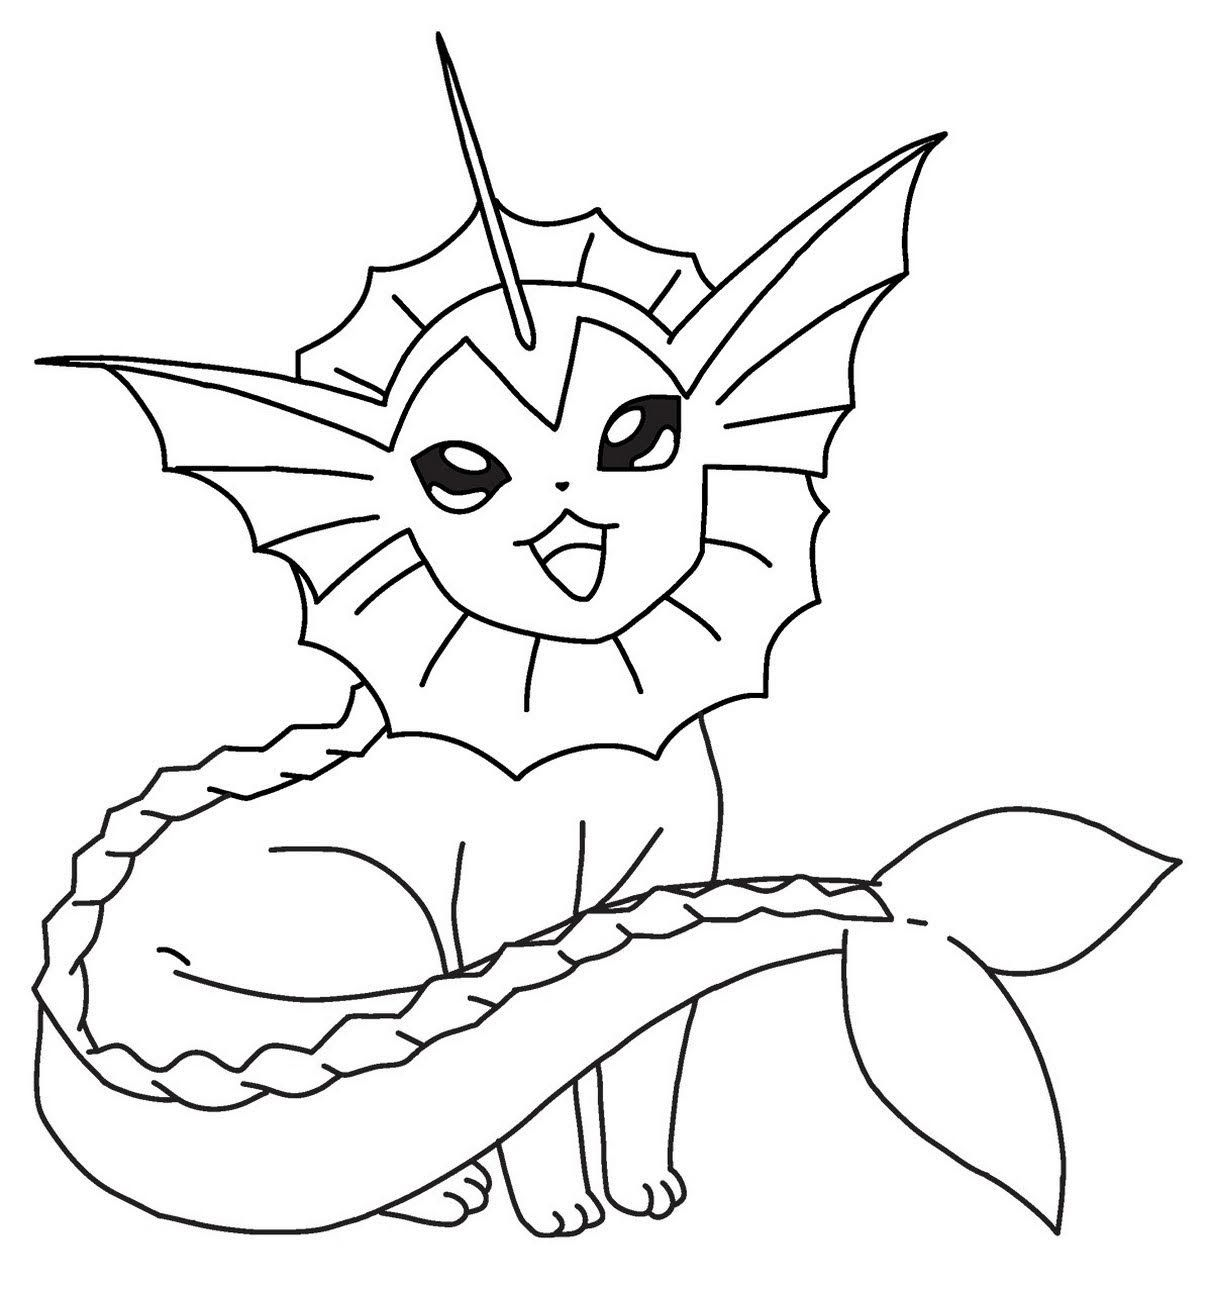 vaporeon coloring pages coloring sheets